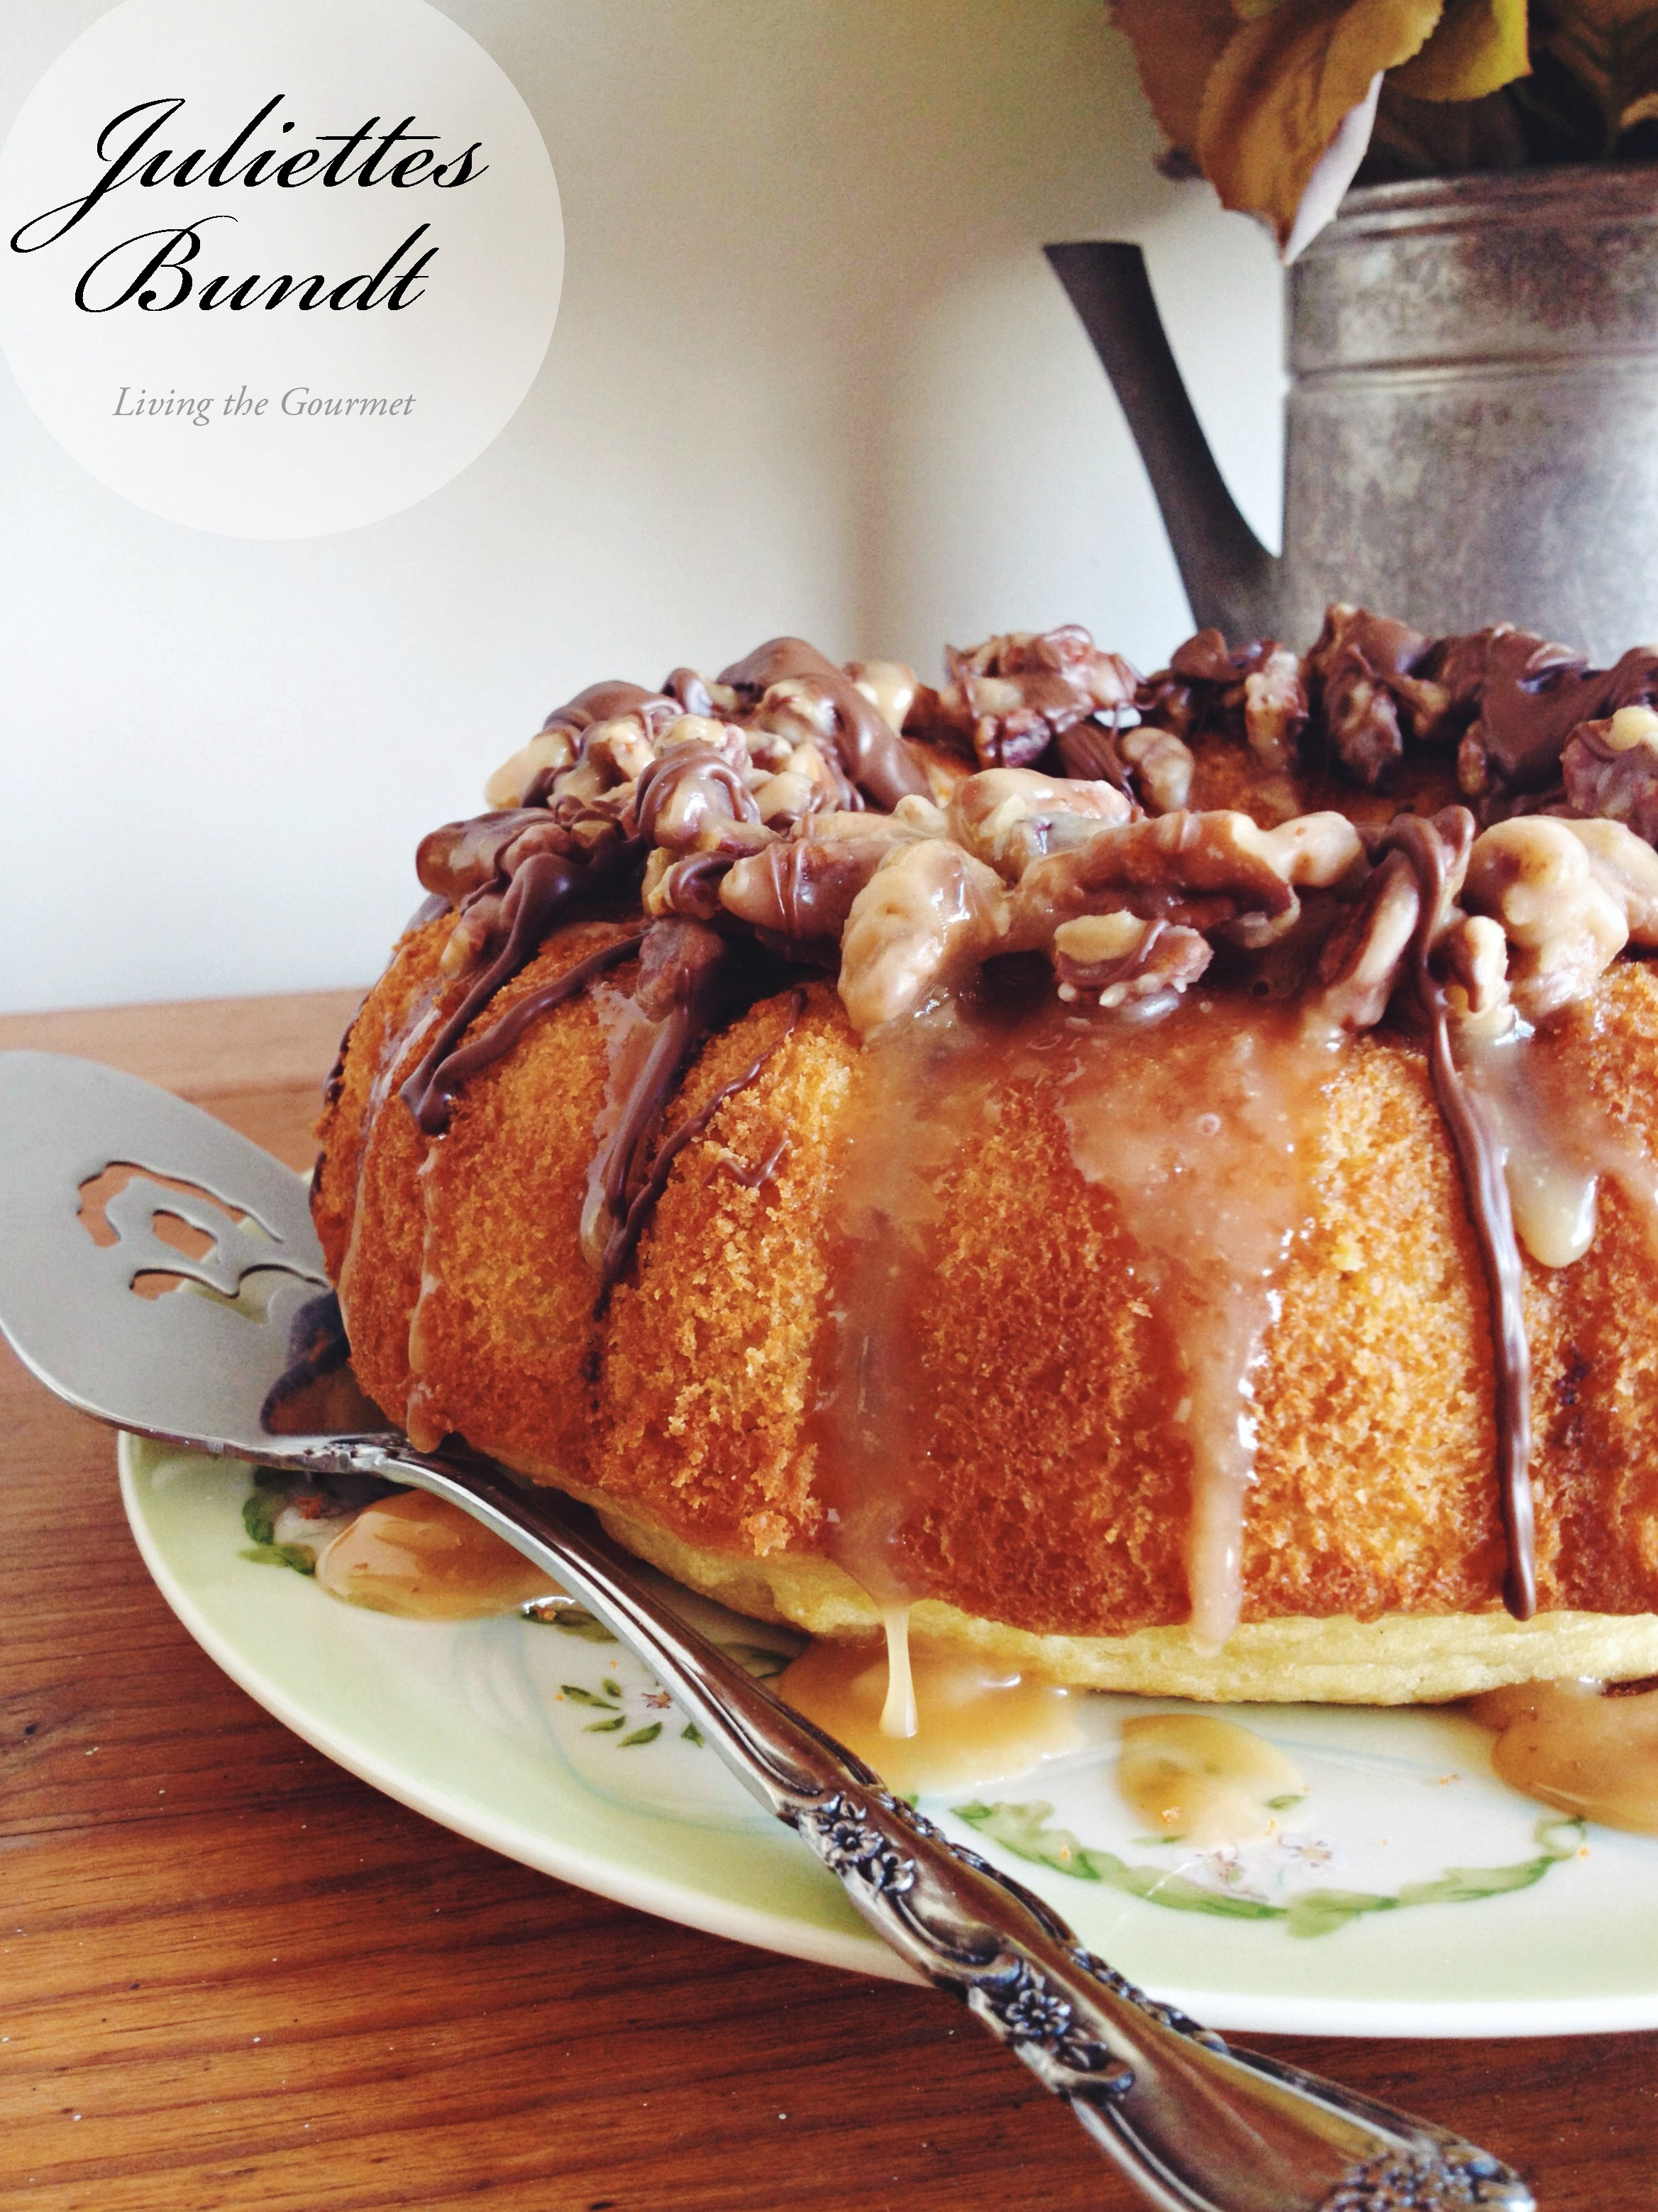 Living the Gourmet: Golden Nut Bundt (Juliettes Bundt)